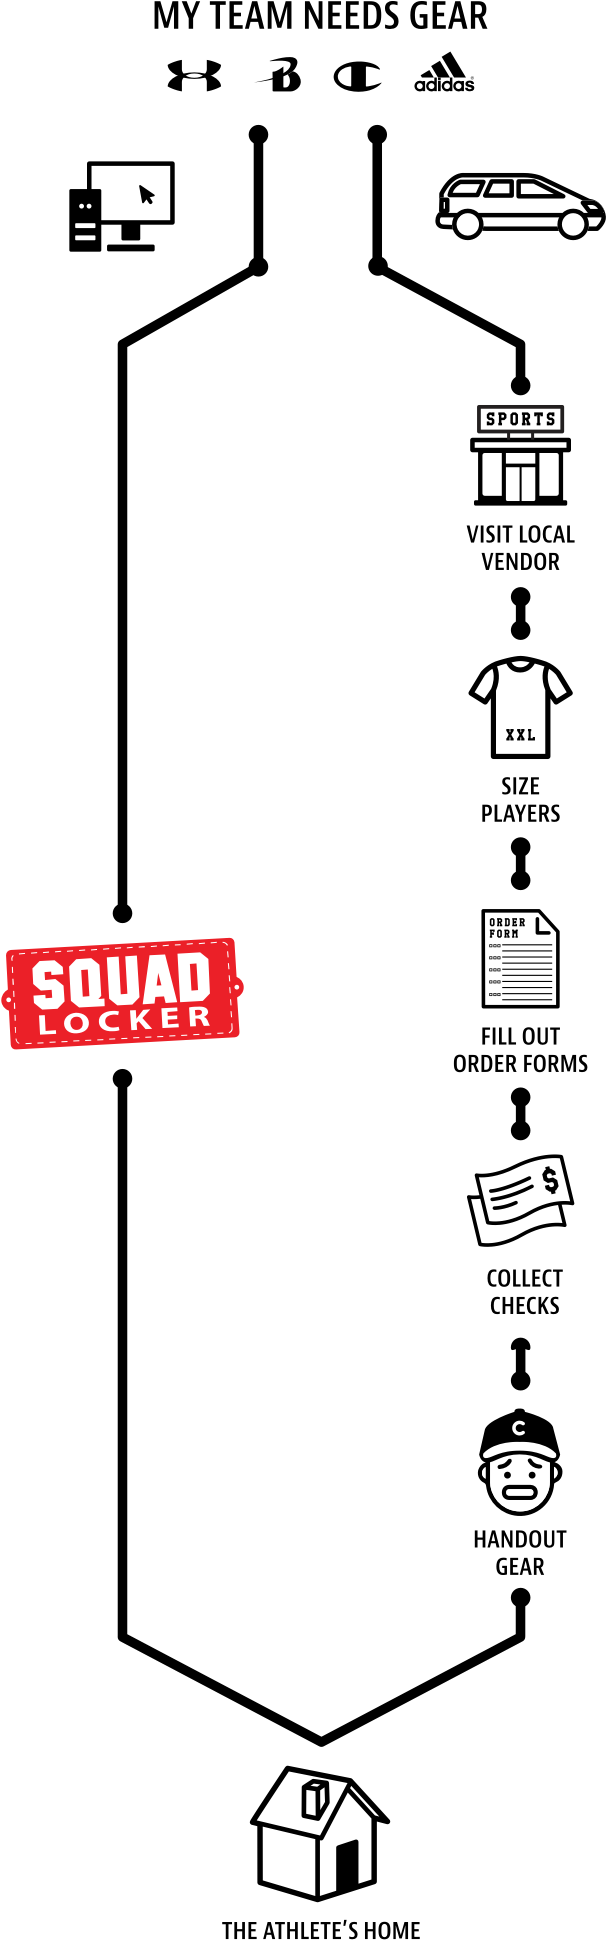 SquadLocker Create Your Own Custom Team Gear - Free sample invoice template marshalls online store